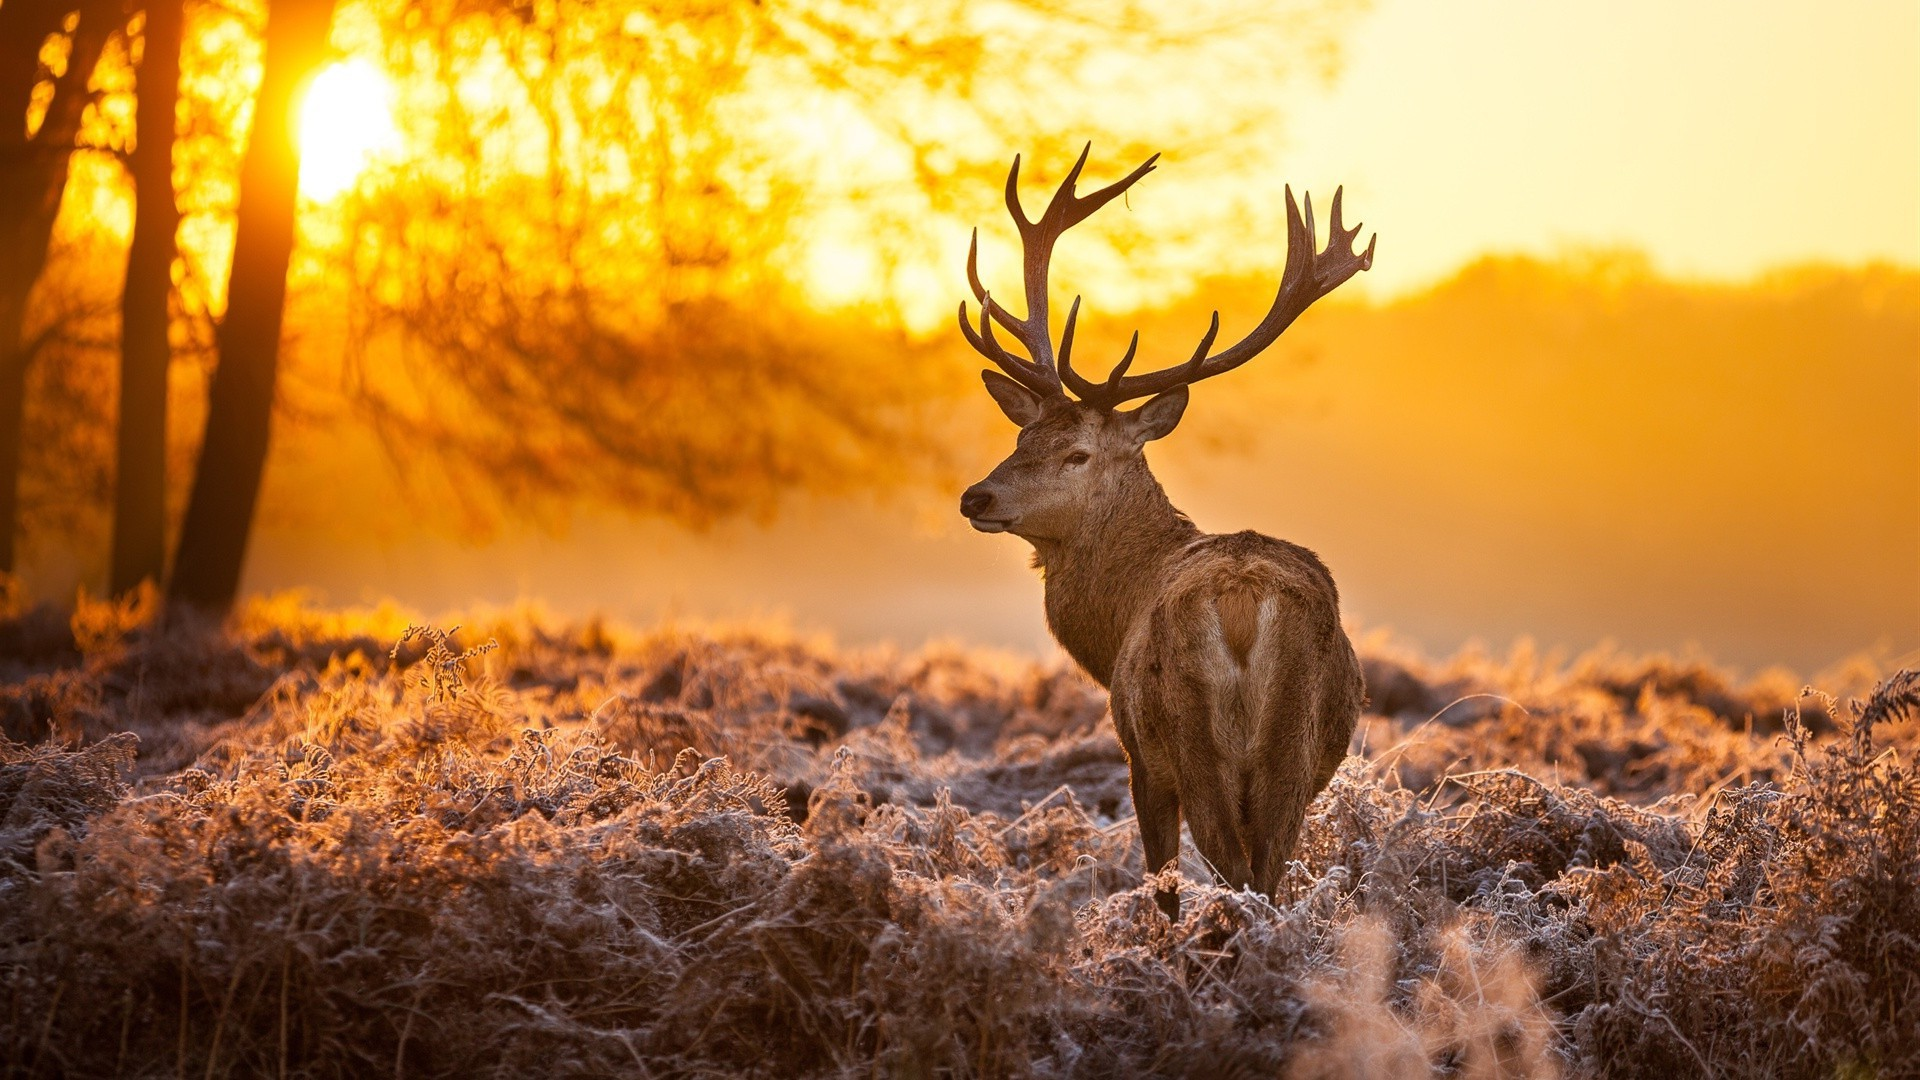 Deer in winter forest at dawn - Android wallpapers